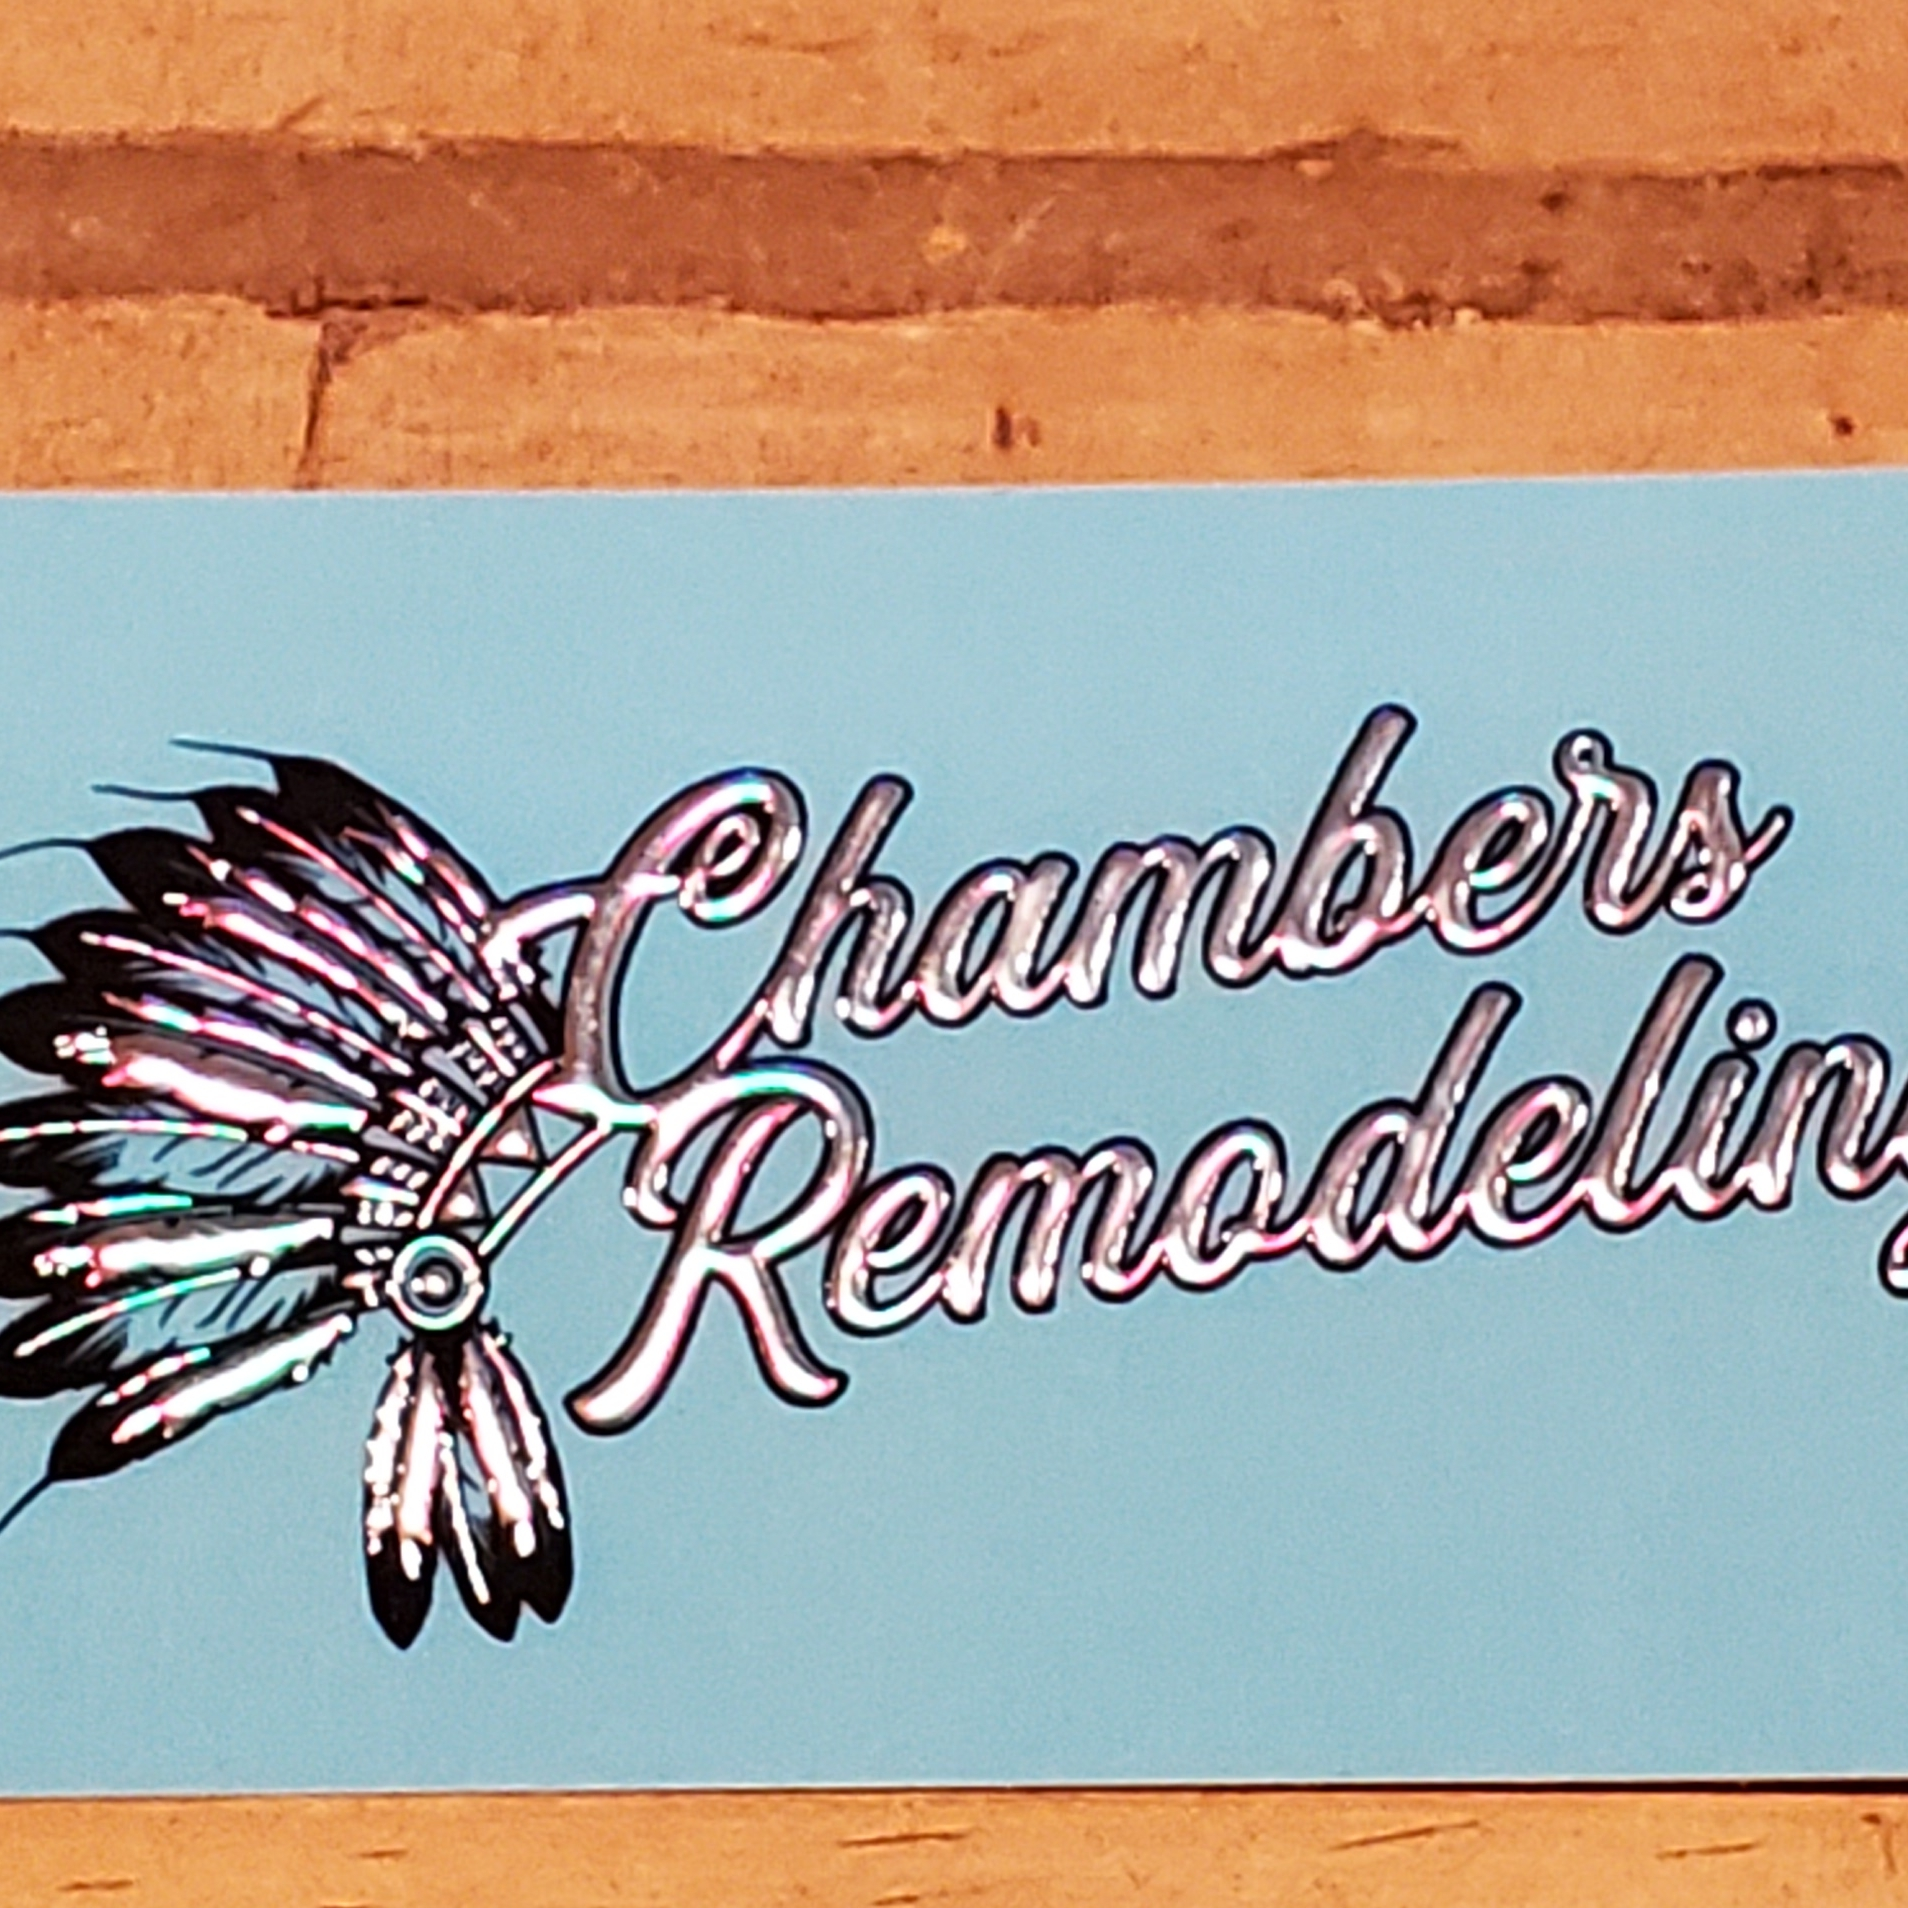 Chambers Remodeling